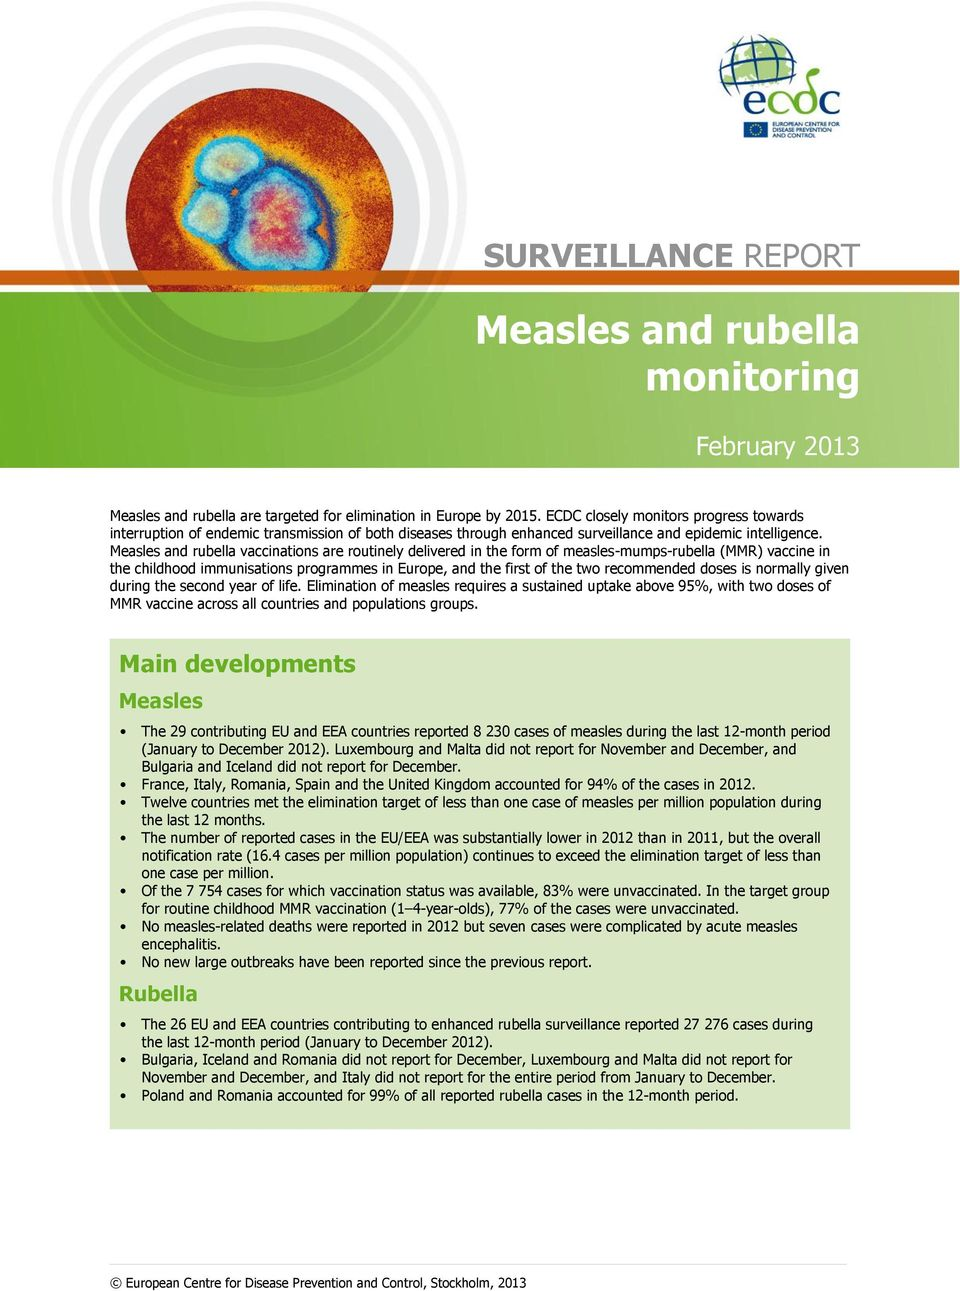 Measles and rubella vaccinations are routinely delivered in the form of measles-mumps-rubella (MMR) vaccine in the childhood immunisations programmes in Europe, and the first of the two recommended